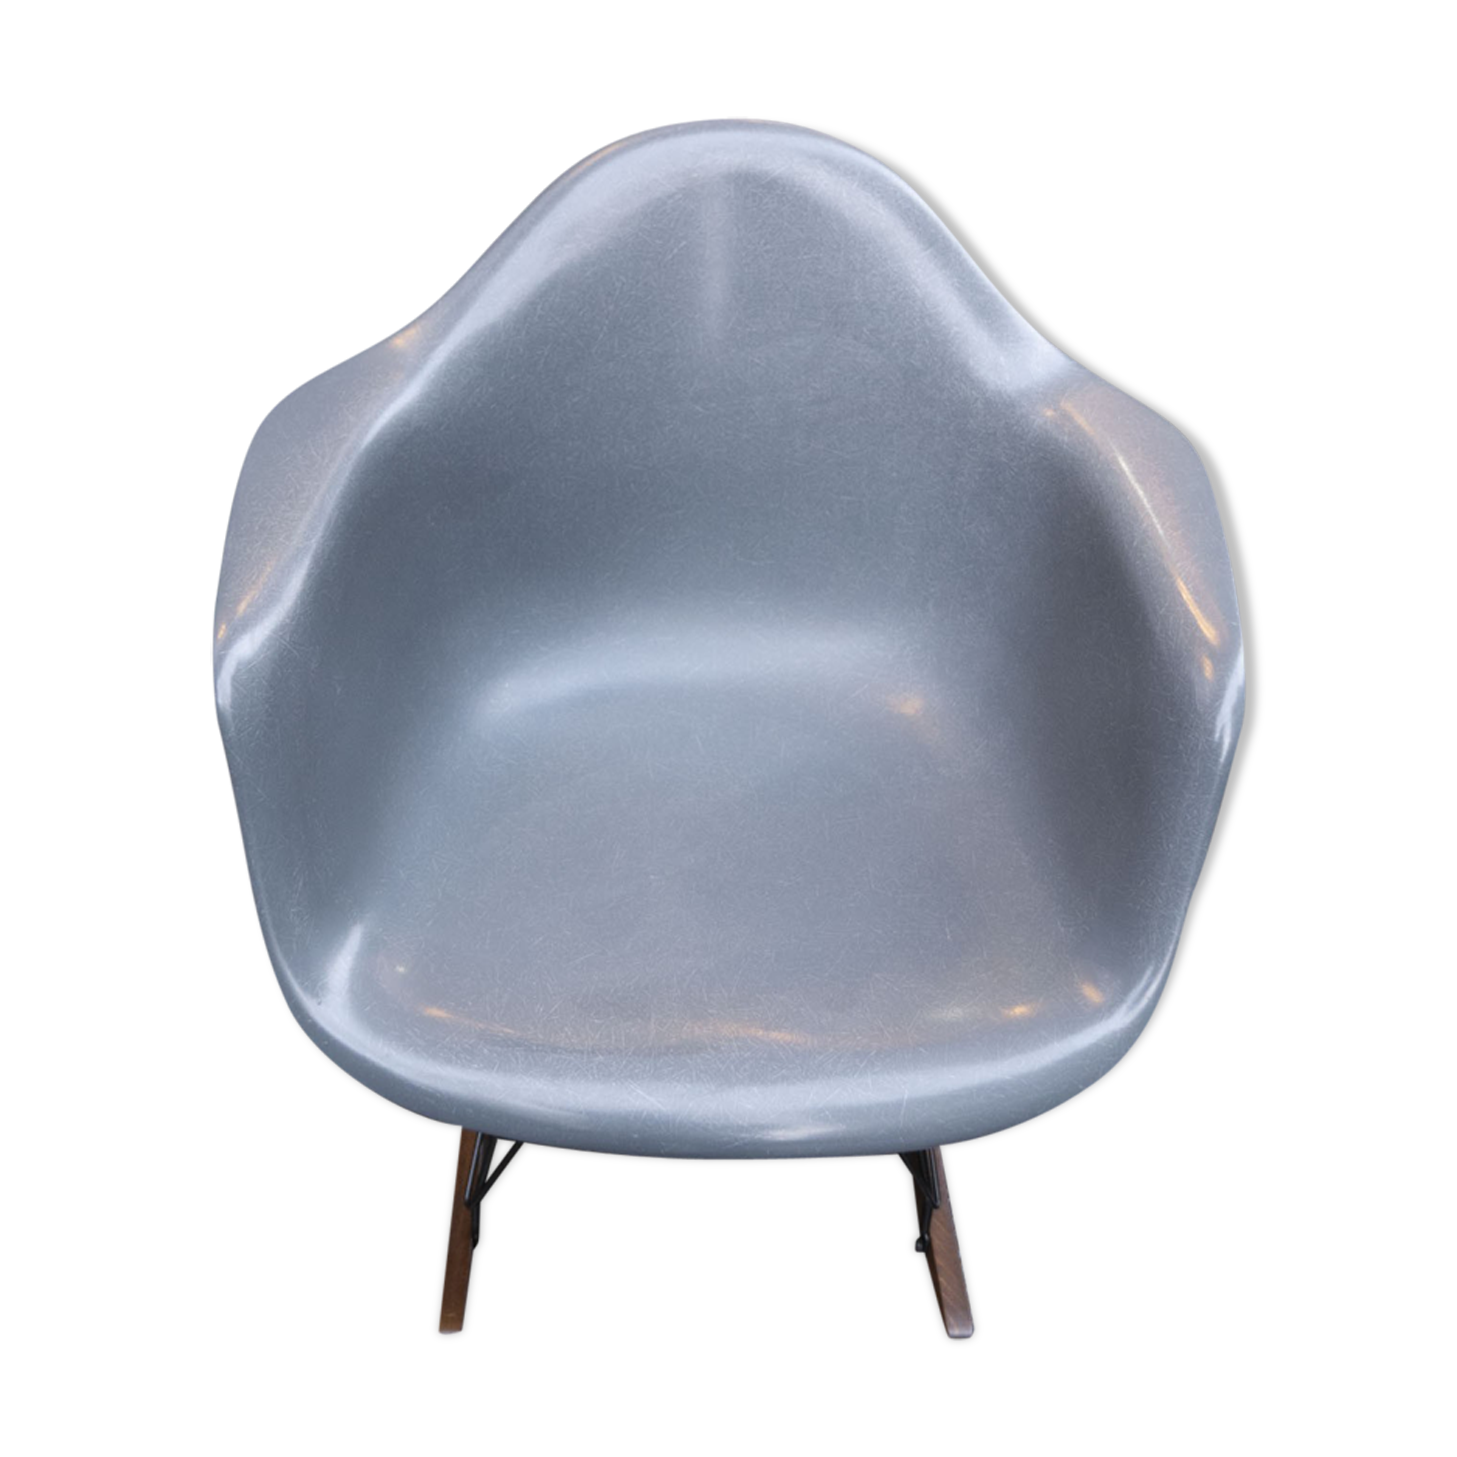 Eames Rocking Chair : Rocking chair by charles and ray eames herman miller edition